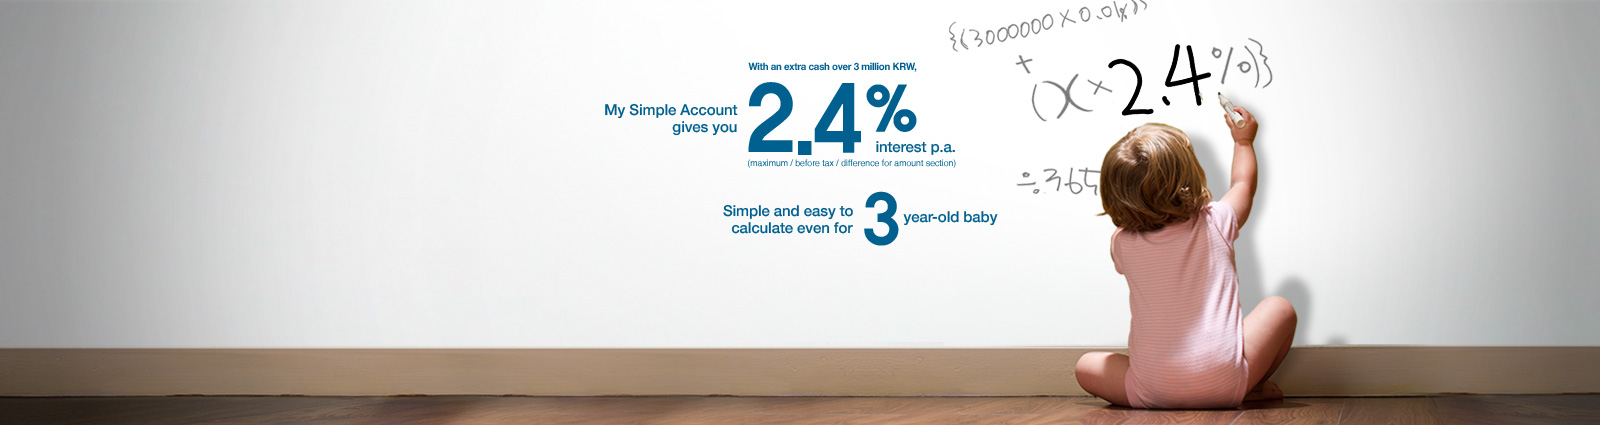 with an extra cash over 3 million KRW, My Simple Account gives you 2.4% interest p.a.(maximum/before tax/difference for amount section) Simple and easy to calculate even for 3 years-old baby